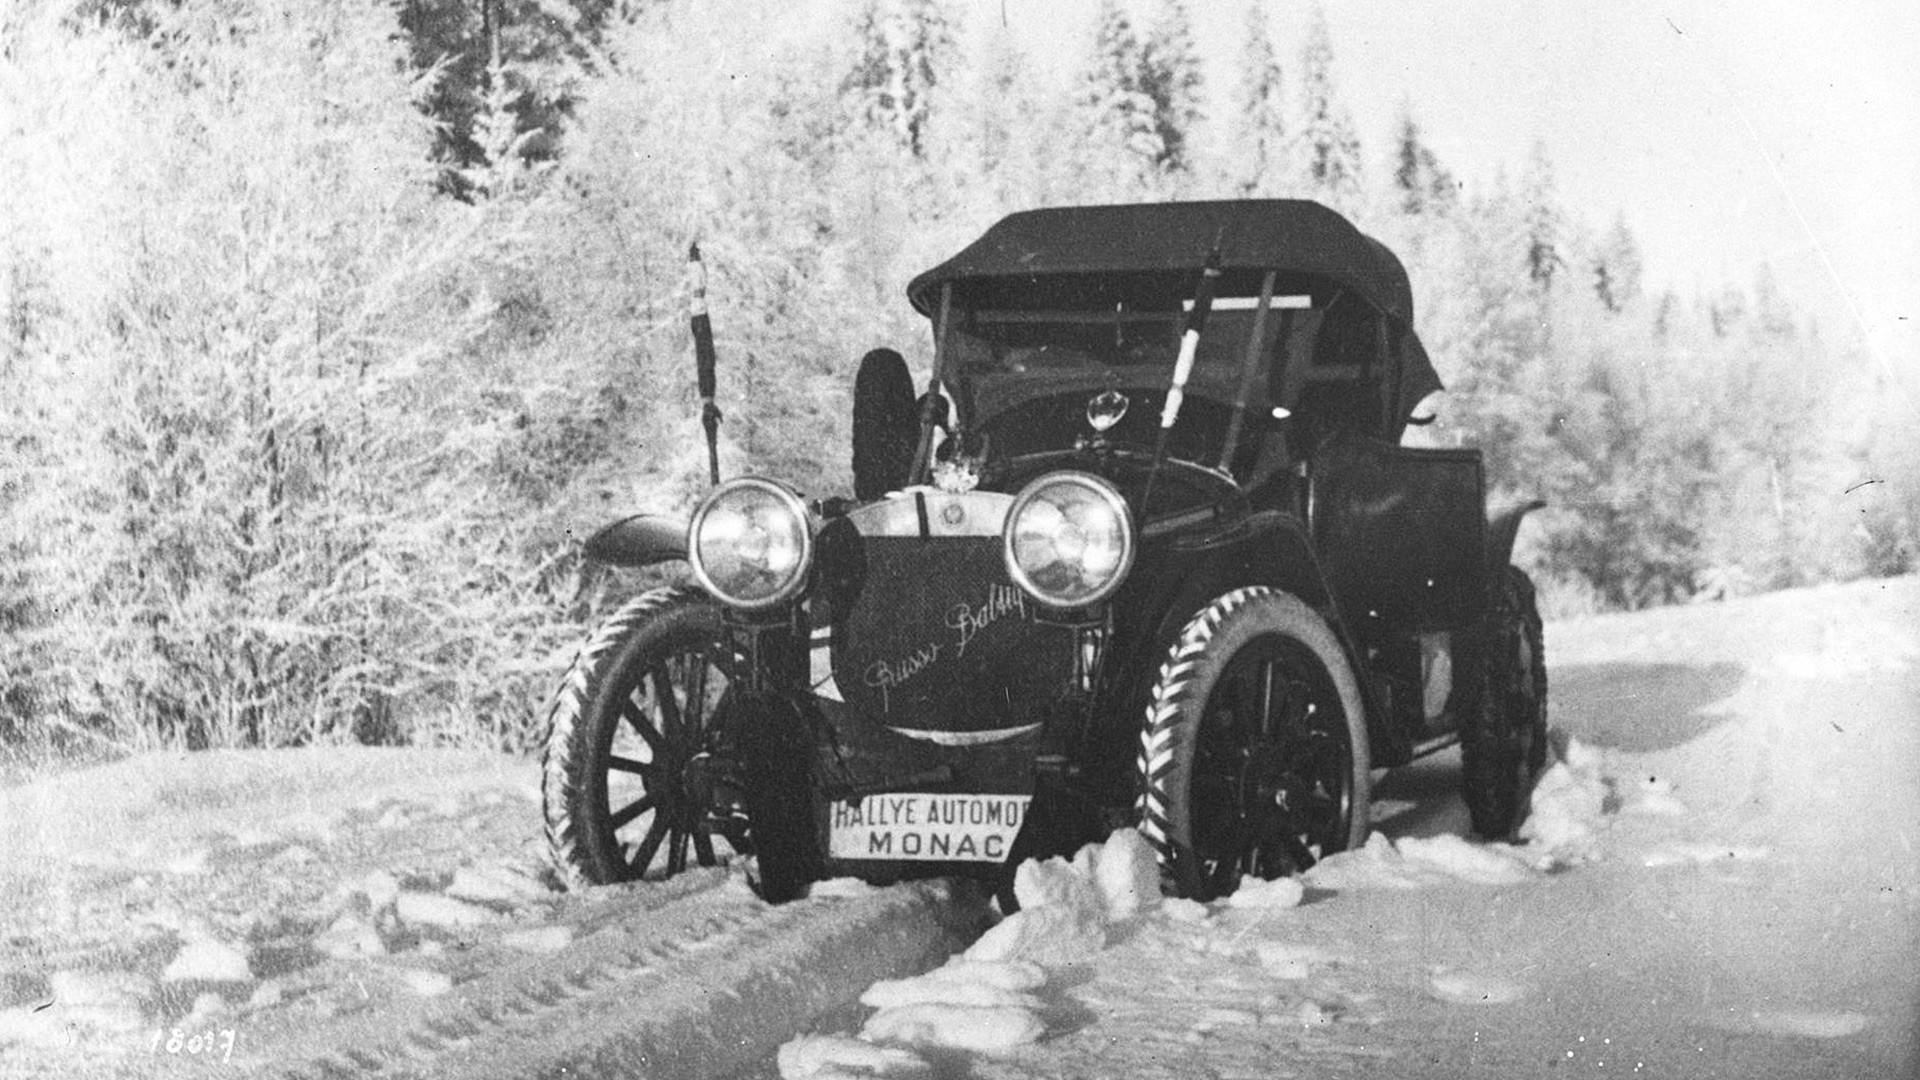 Andrei Nagel's Russo-Balt car at the 1912 rally Monte Carlo.